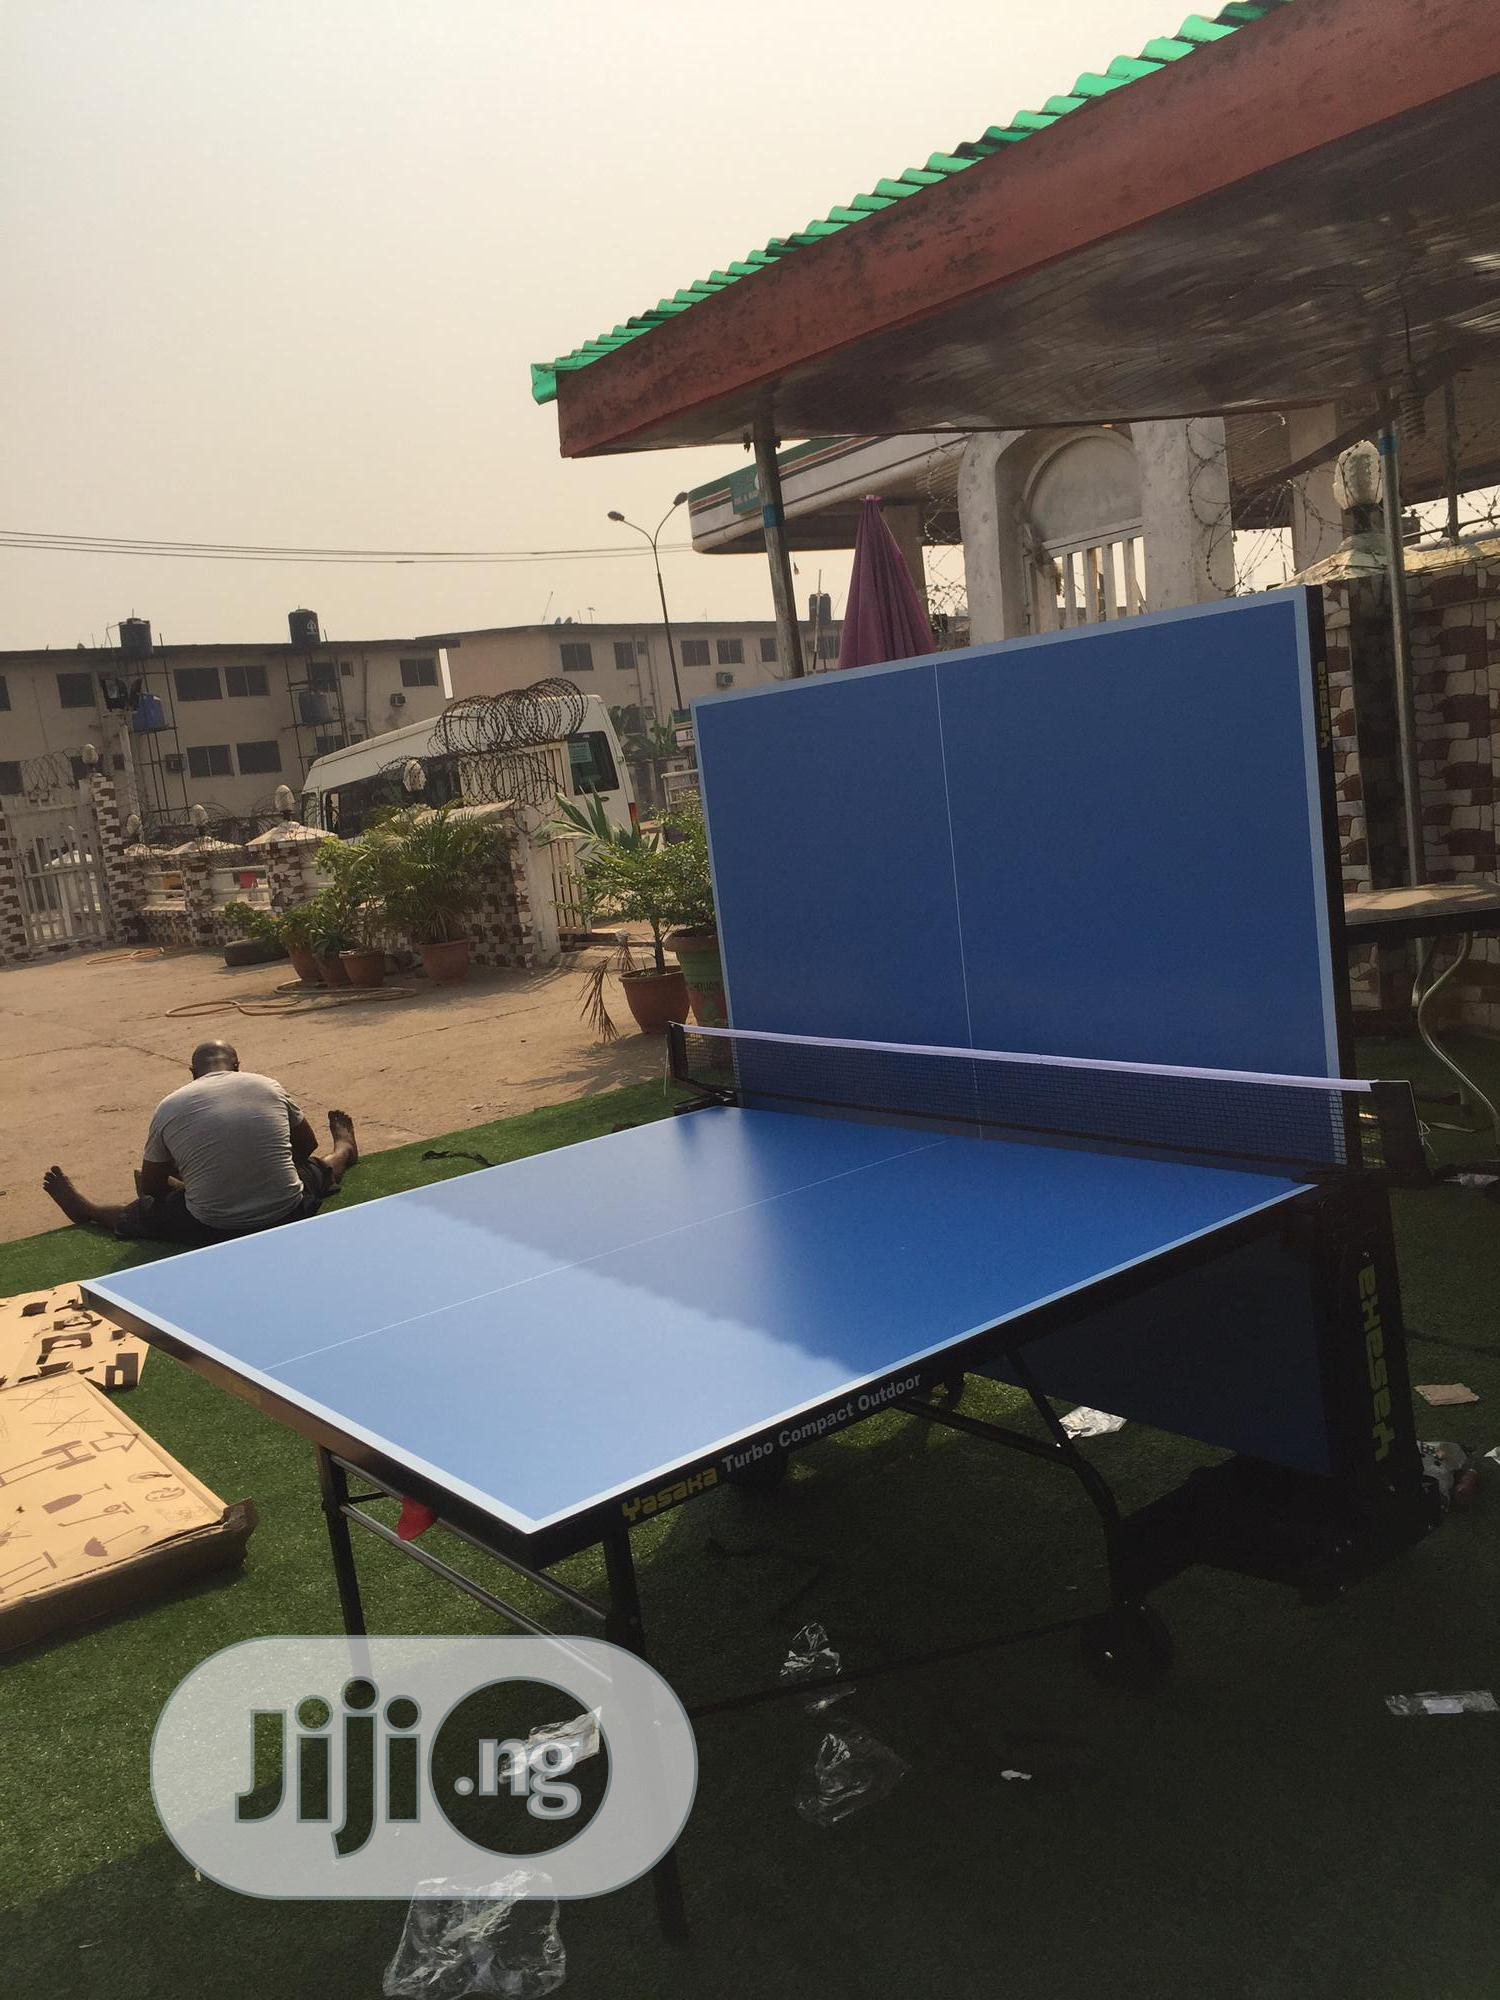 Brand New Imported Yasaka Outdoor Table Tennis. Nationwide Delivery